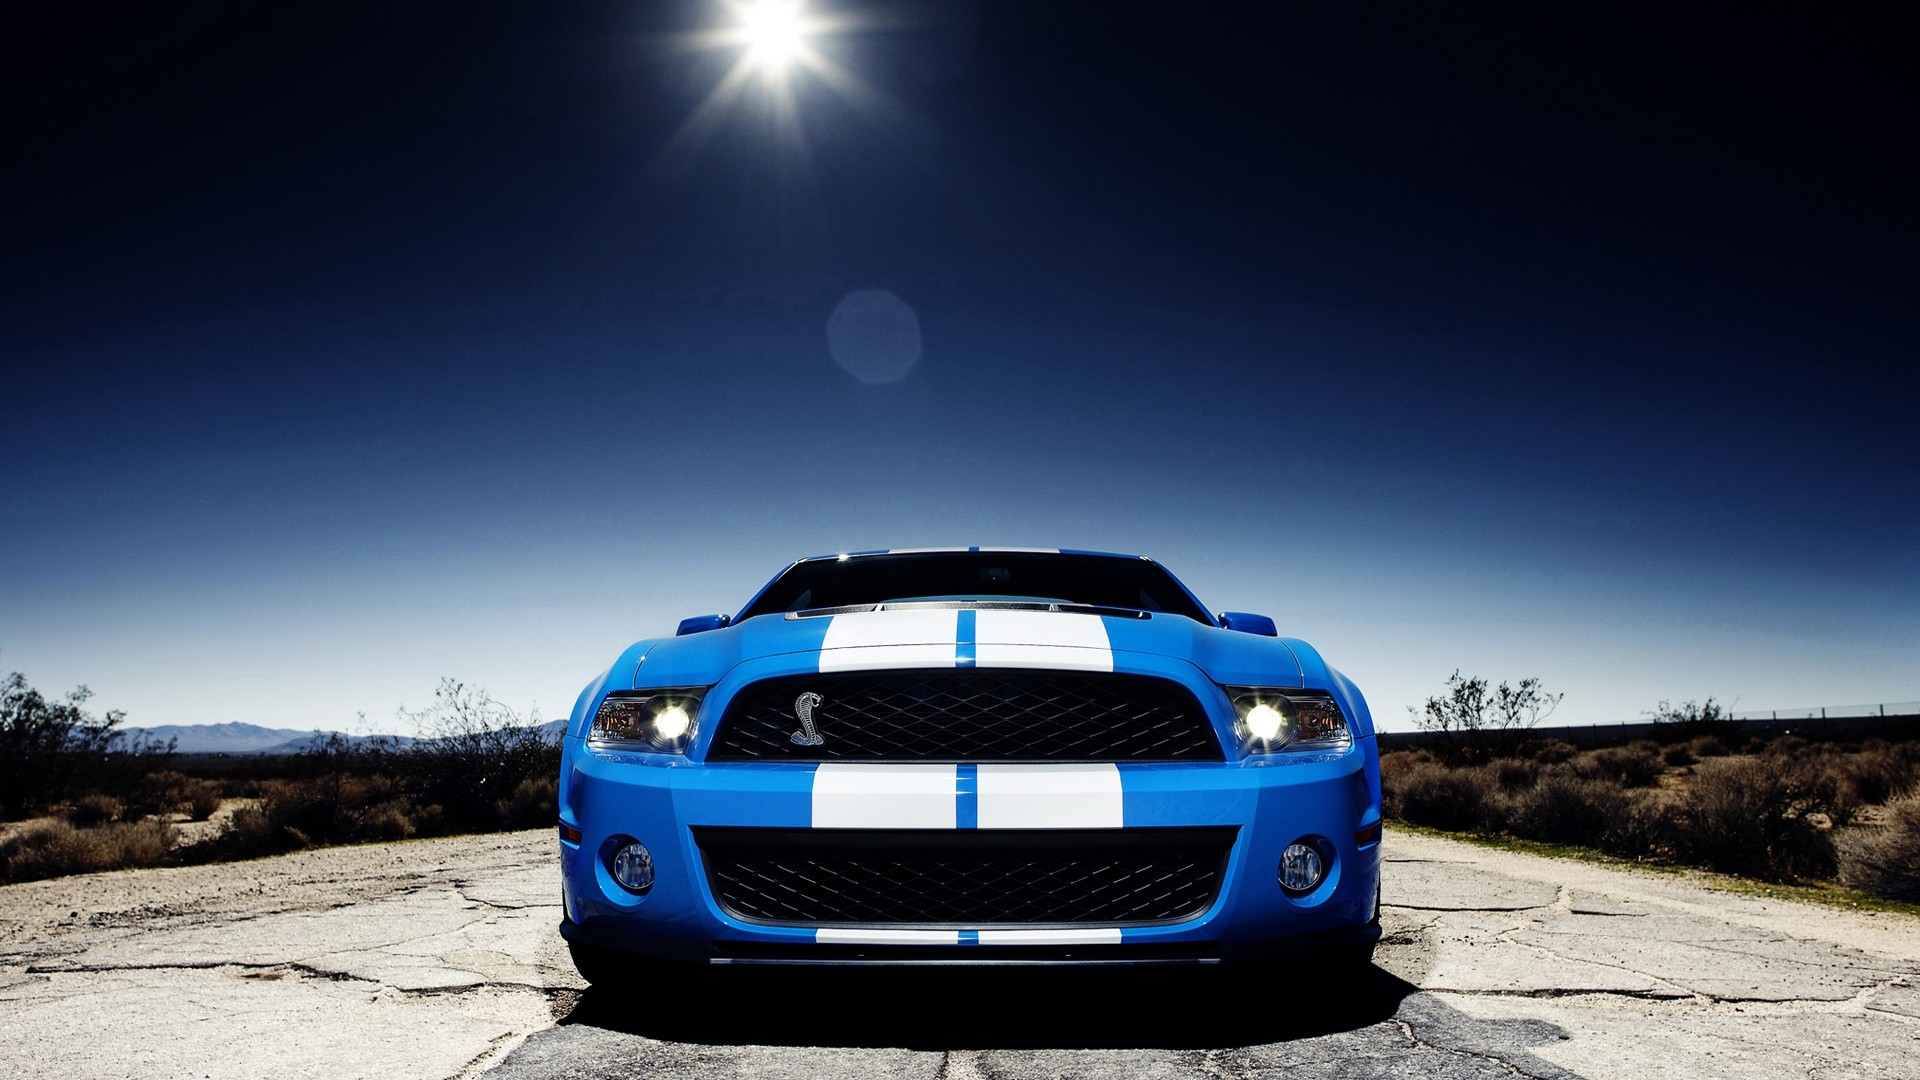 Cars Ford Mustang Shelby Gt500 Wallpaper 1920x1080 190199 Wallpaperup